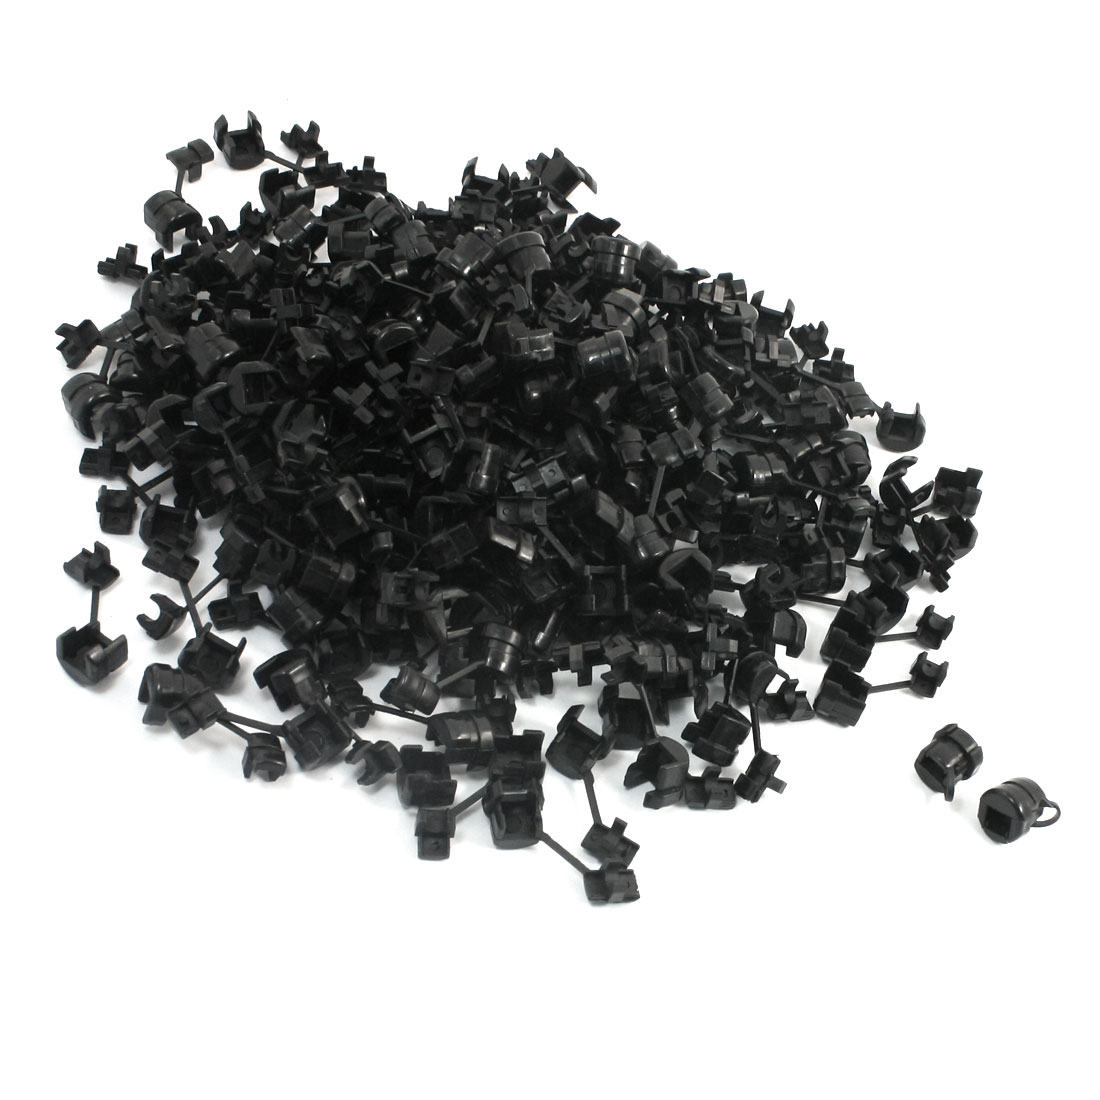 200 Pcs Black Nylon Wires Protectors Strain Relief Bushing for 4mm Round Cables